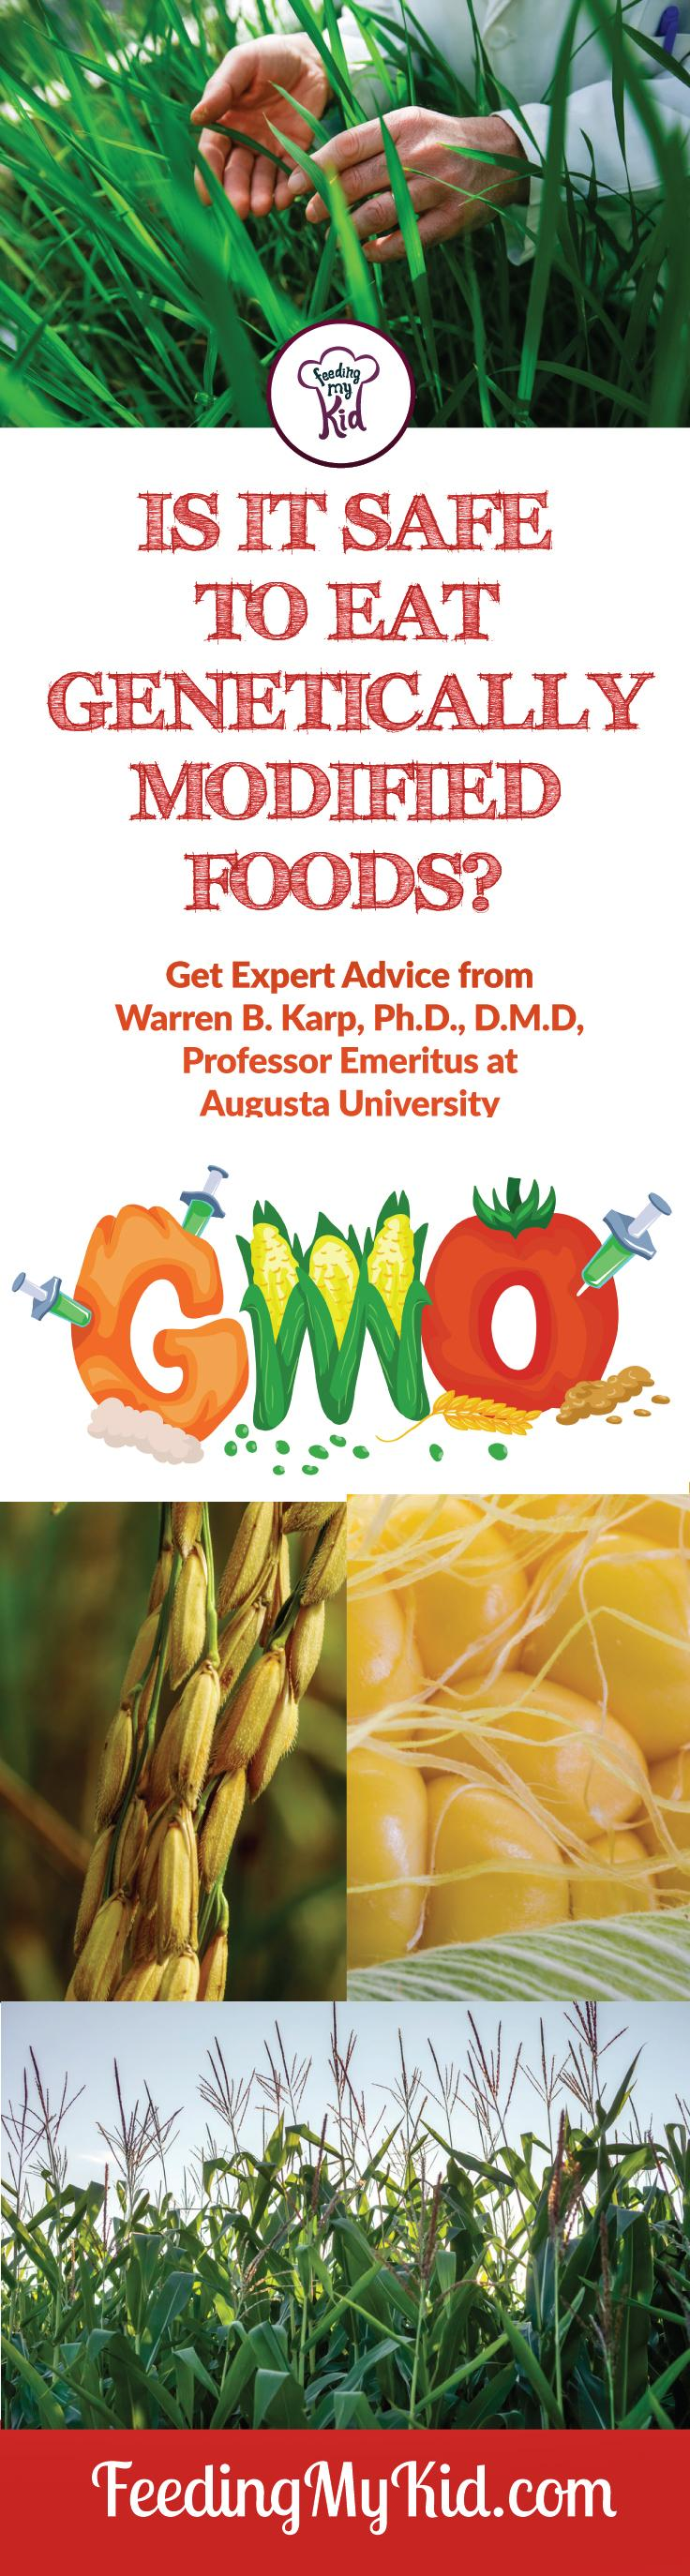 GMOs are common in today's supermarkets. Are you wondering if eating genetically modified foods is safe? Read about GMO safety from a doctor's perspective.